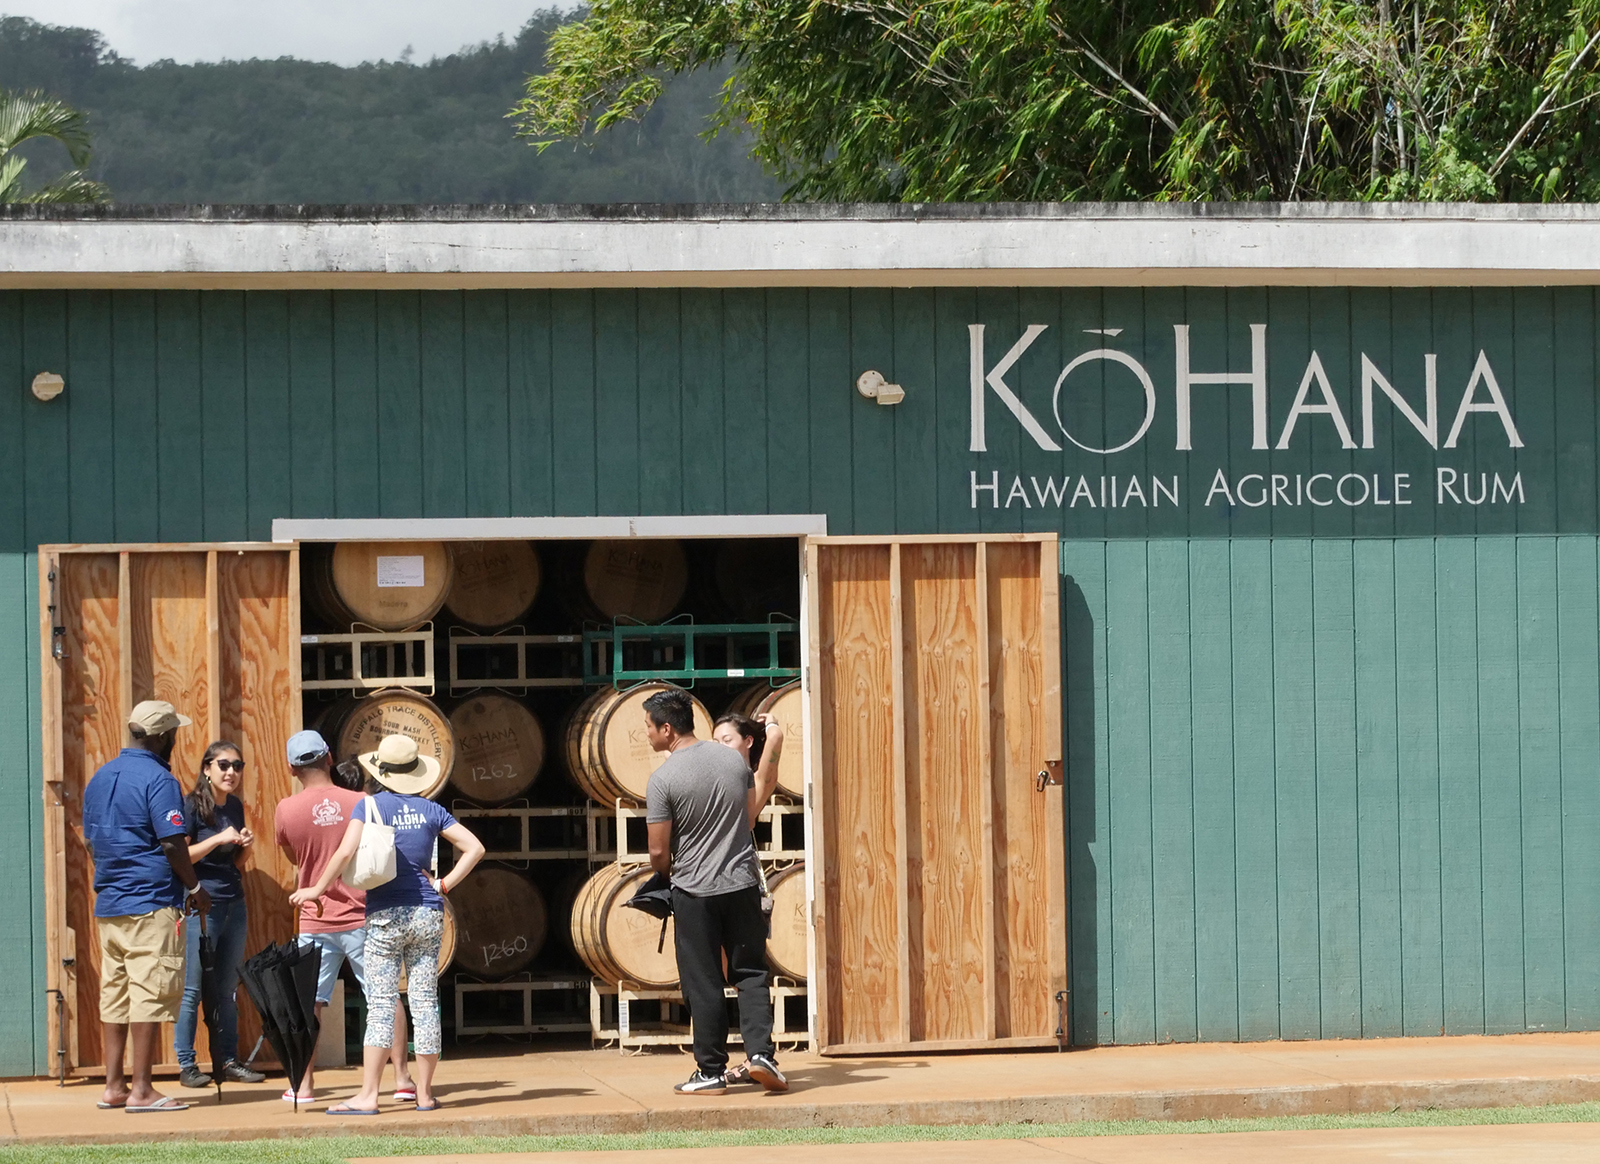 <p>A Ko Hana staff member gives visitors a peak into the barrel room where rum is aged in a variety of wooden barrels. Visitors can take 30-minute tours to learn about the various aspects of rum production.</p>